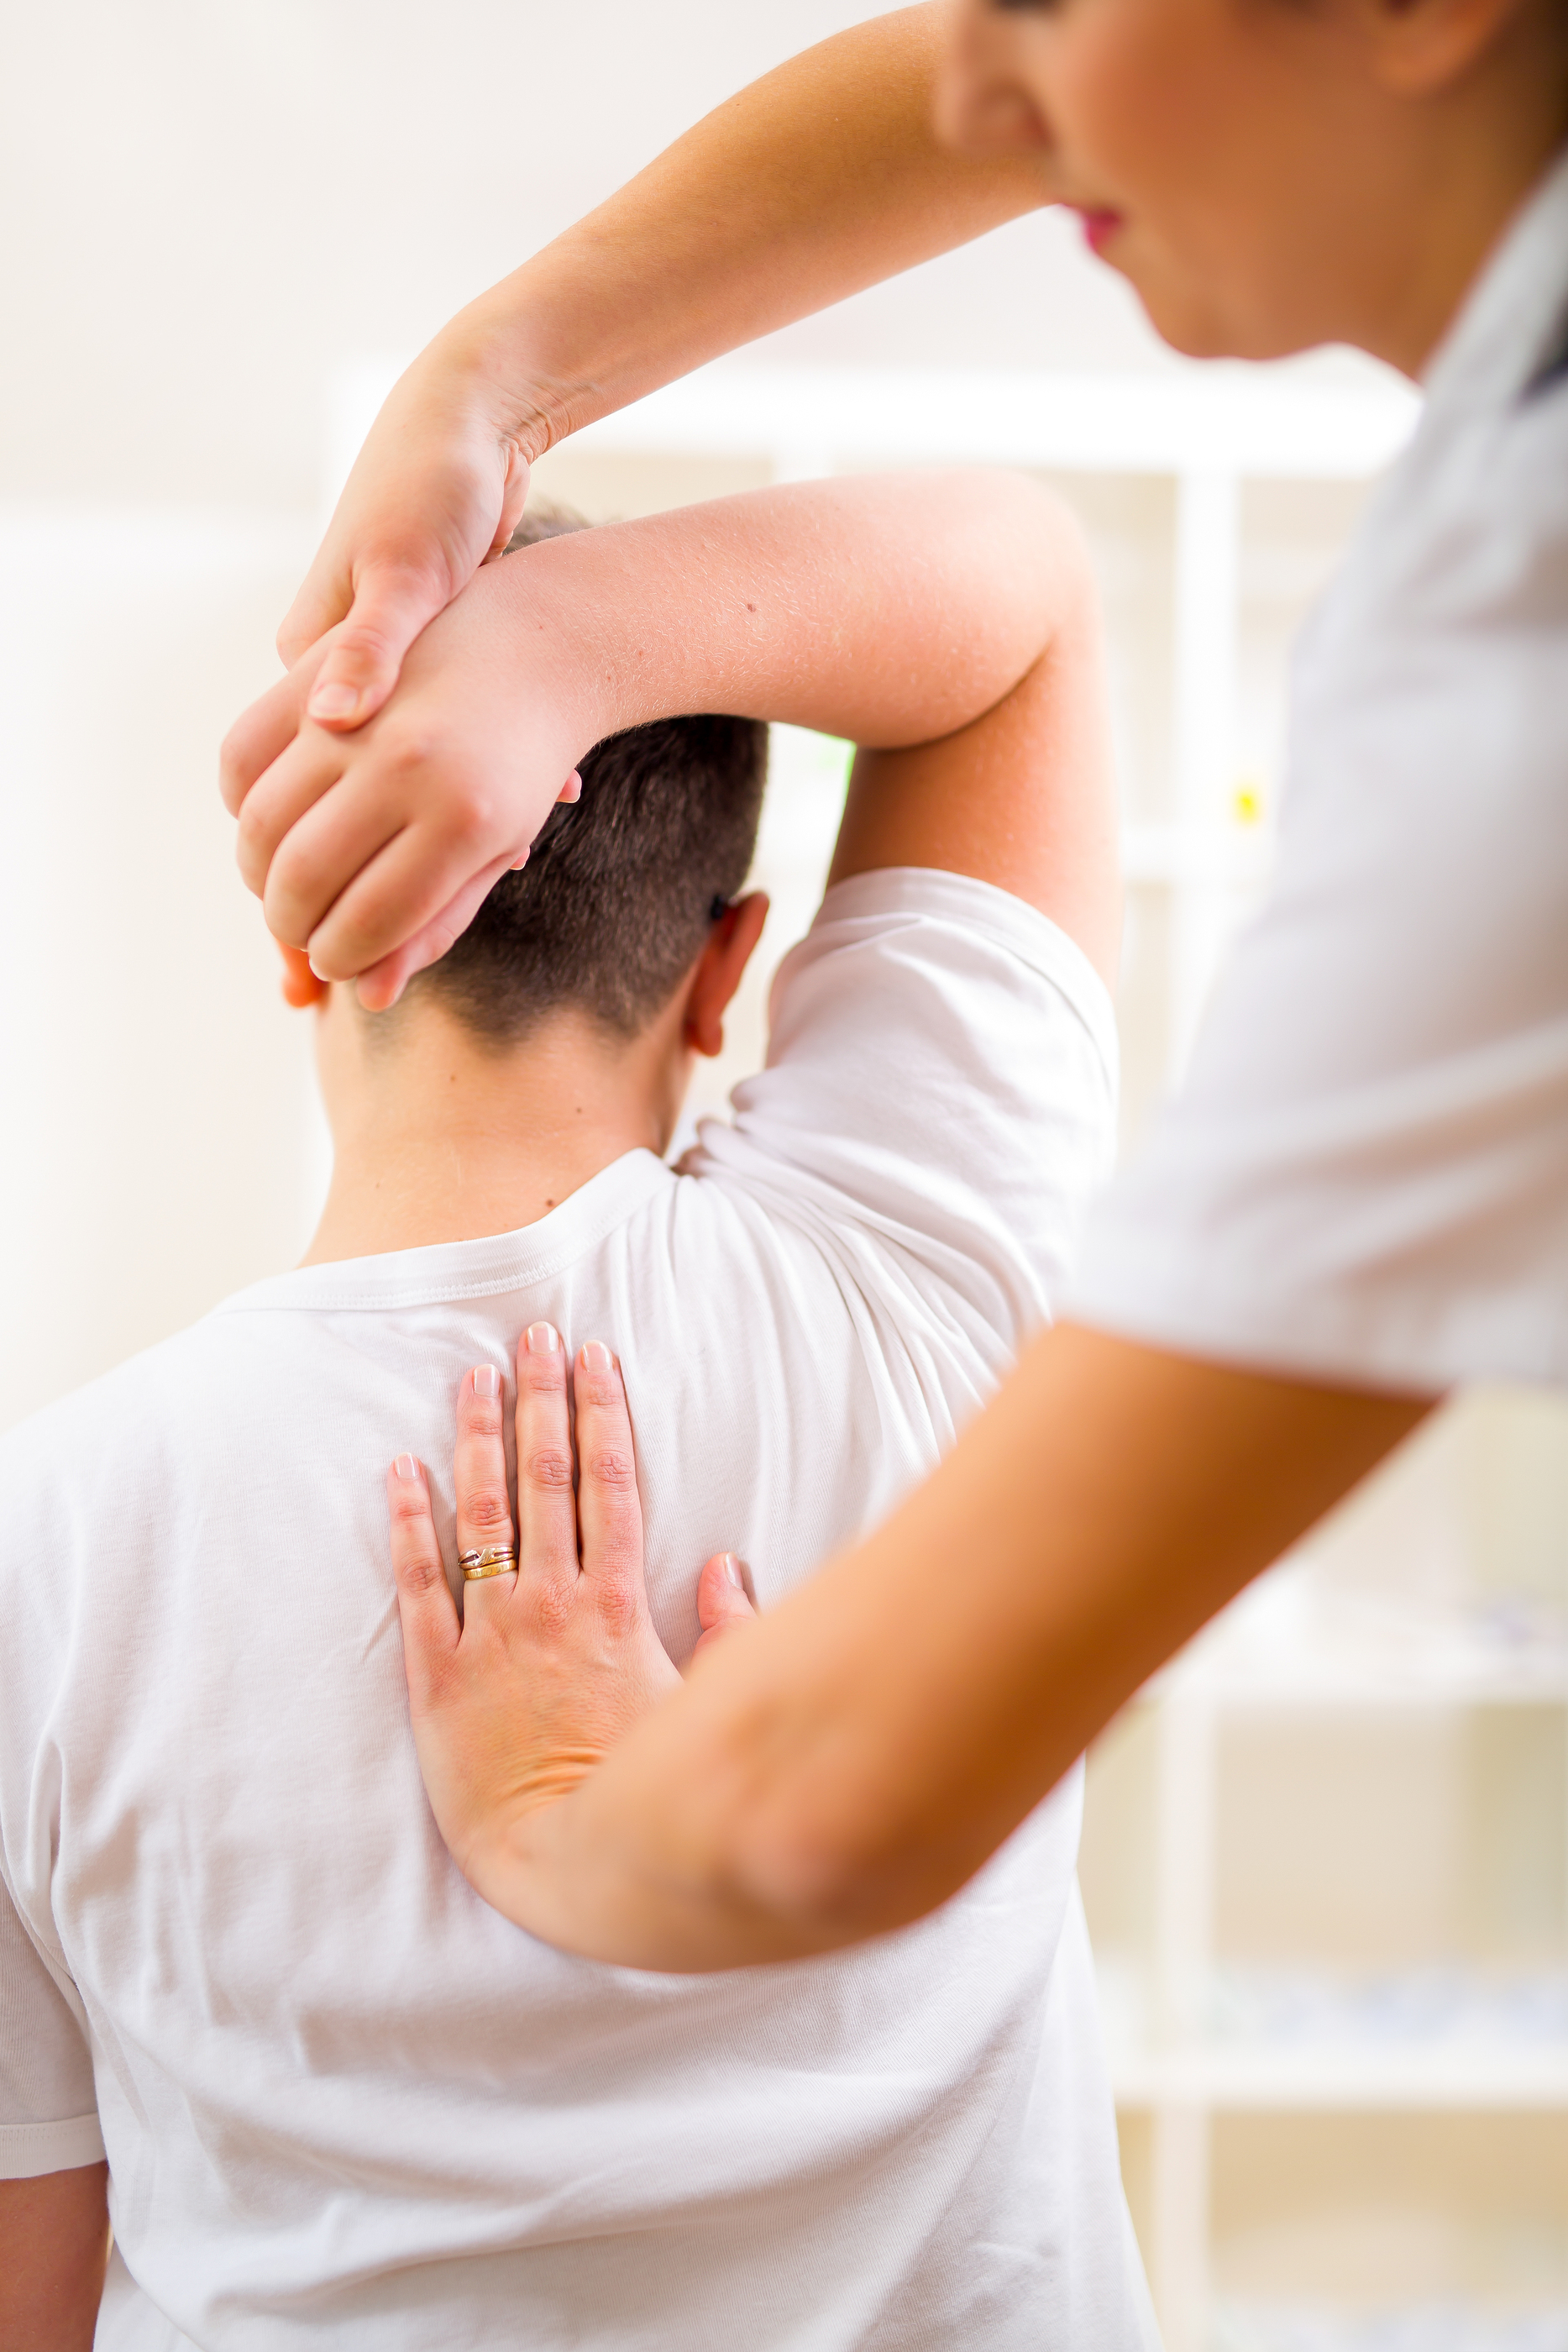 The difference between Osteopathy and Chiropractic